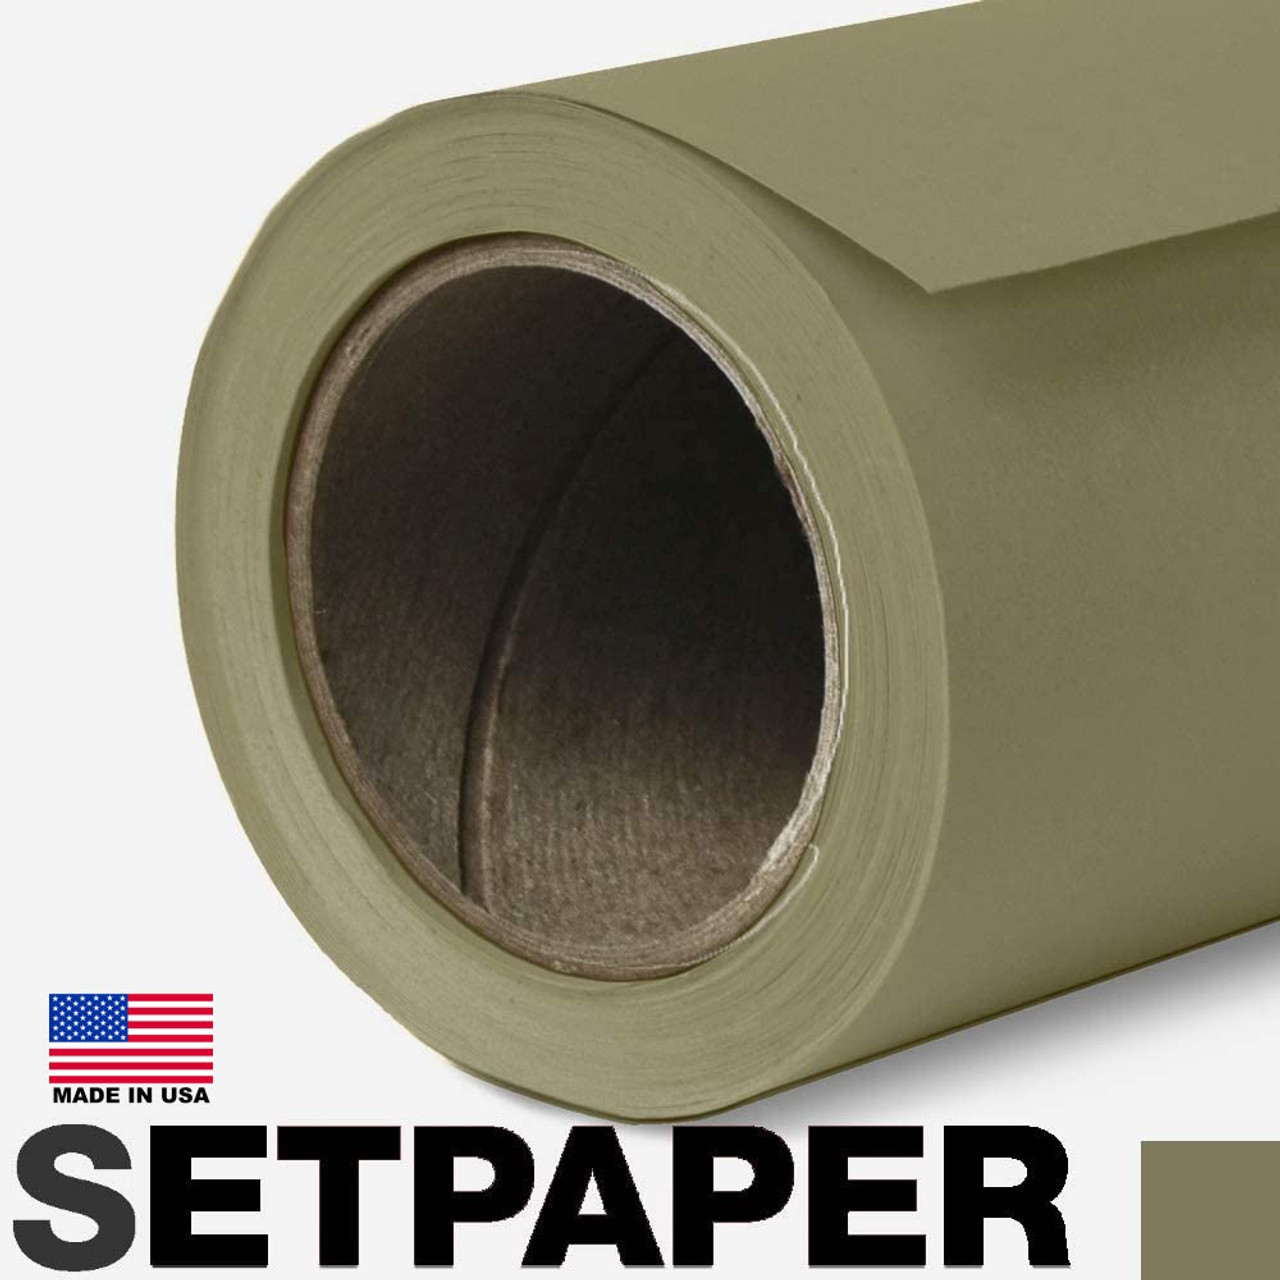 "EXTRA LONG SETPAPER - LEAF GREEN 107"" x 36' (2.7 x 11m)"